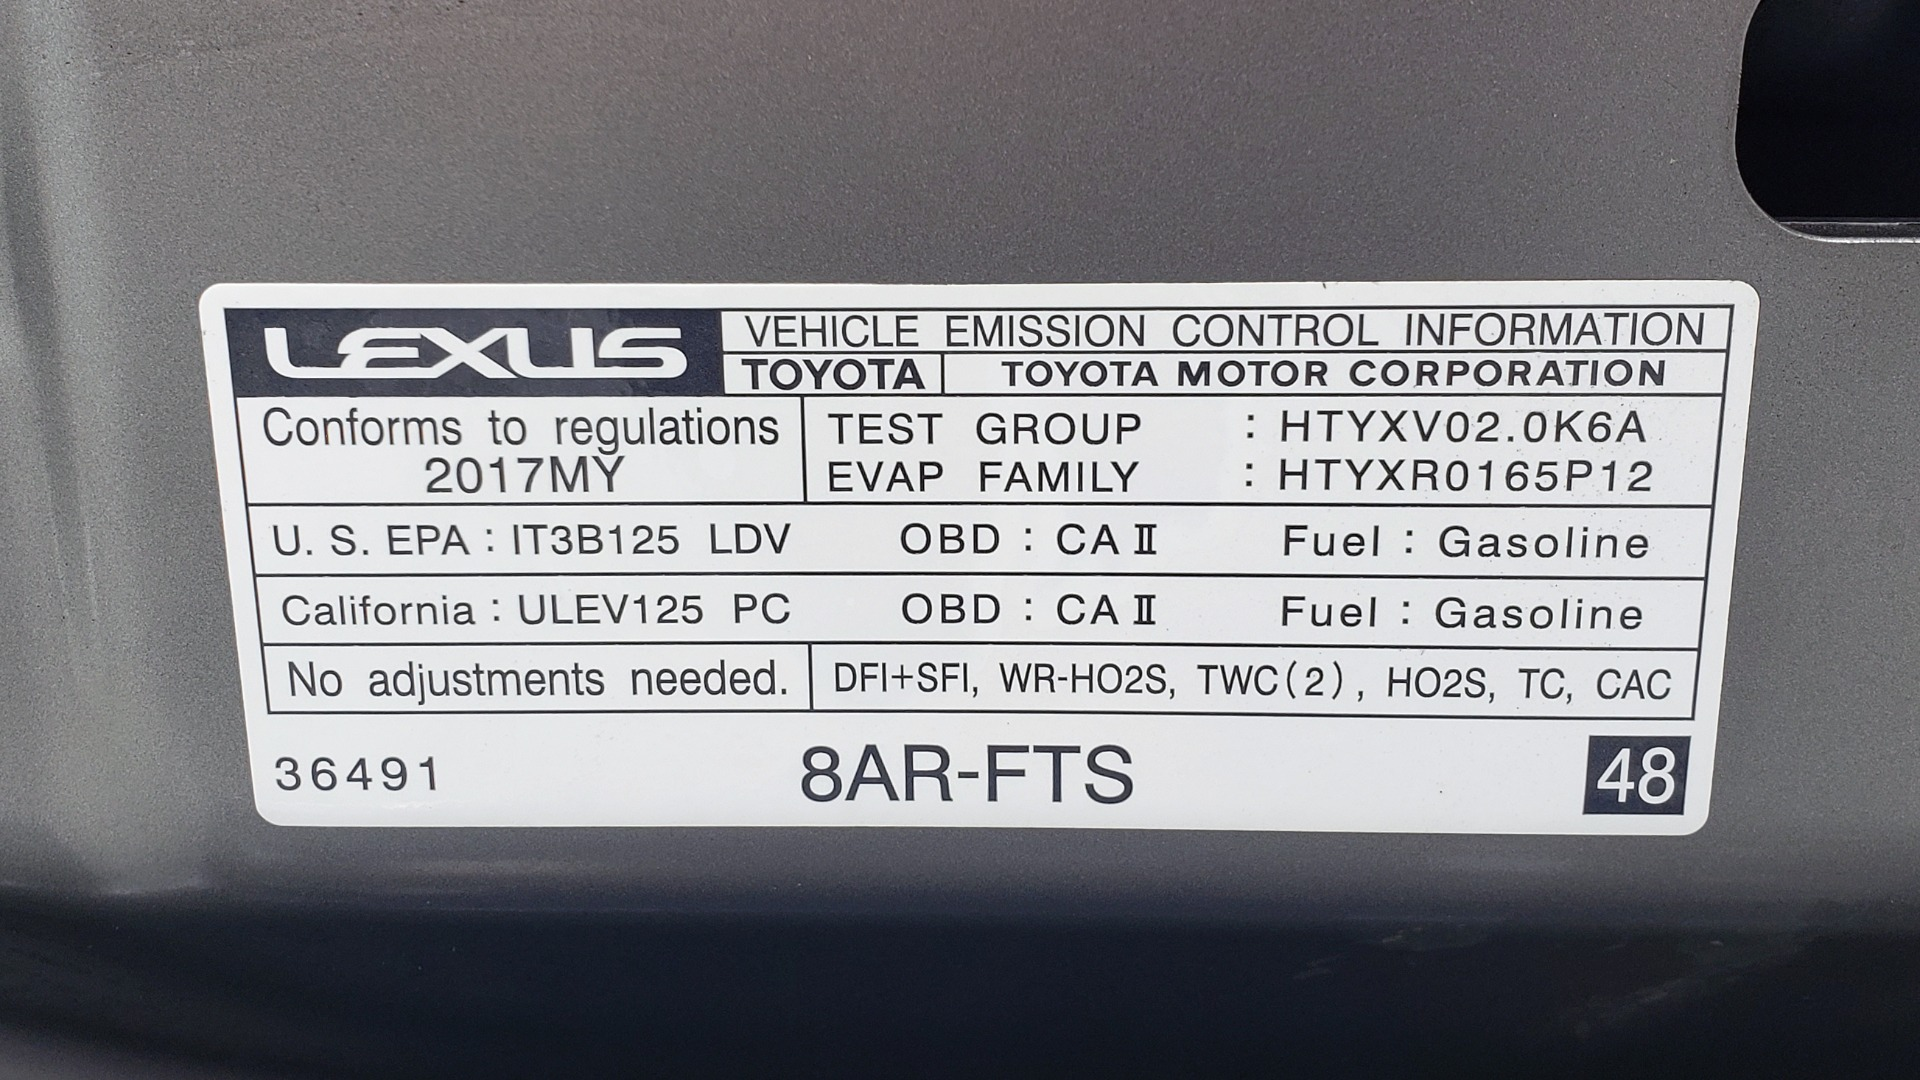 Used 2017 Lexus IS 200 TURBO F-SPORT / BSM / SUNROOF / VENT SEATS / REARVIEW for sale Sold at Formula Imports in Charlotte NC 28227 18